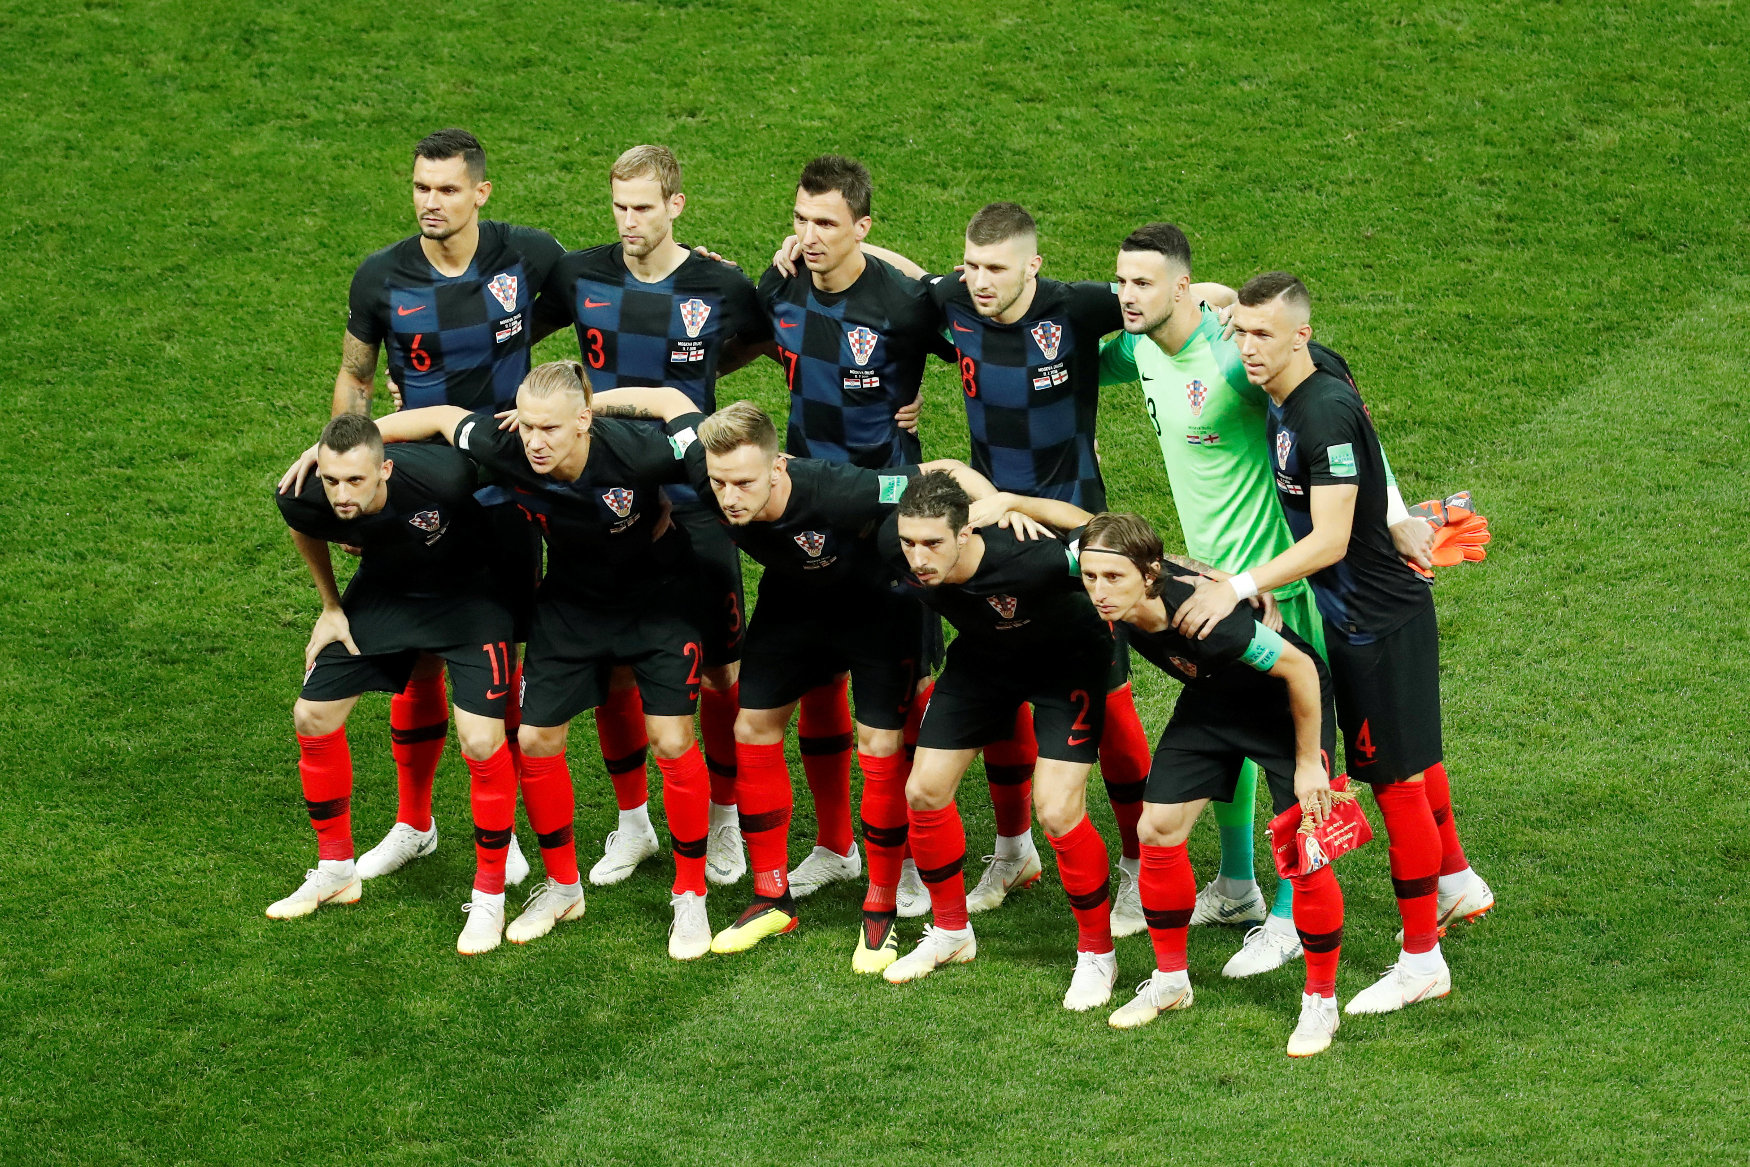 2018-07-11T180028Z_503313907_RC1FDBBE4C00_RTRMADP_3_SOCCER-WORLDCUP-CRO-ENG